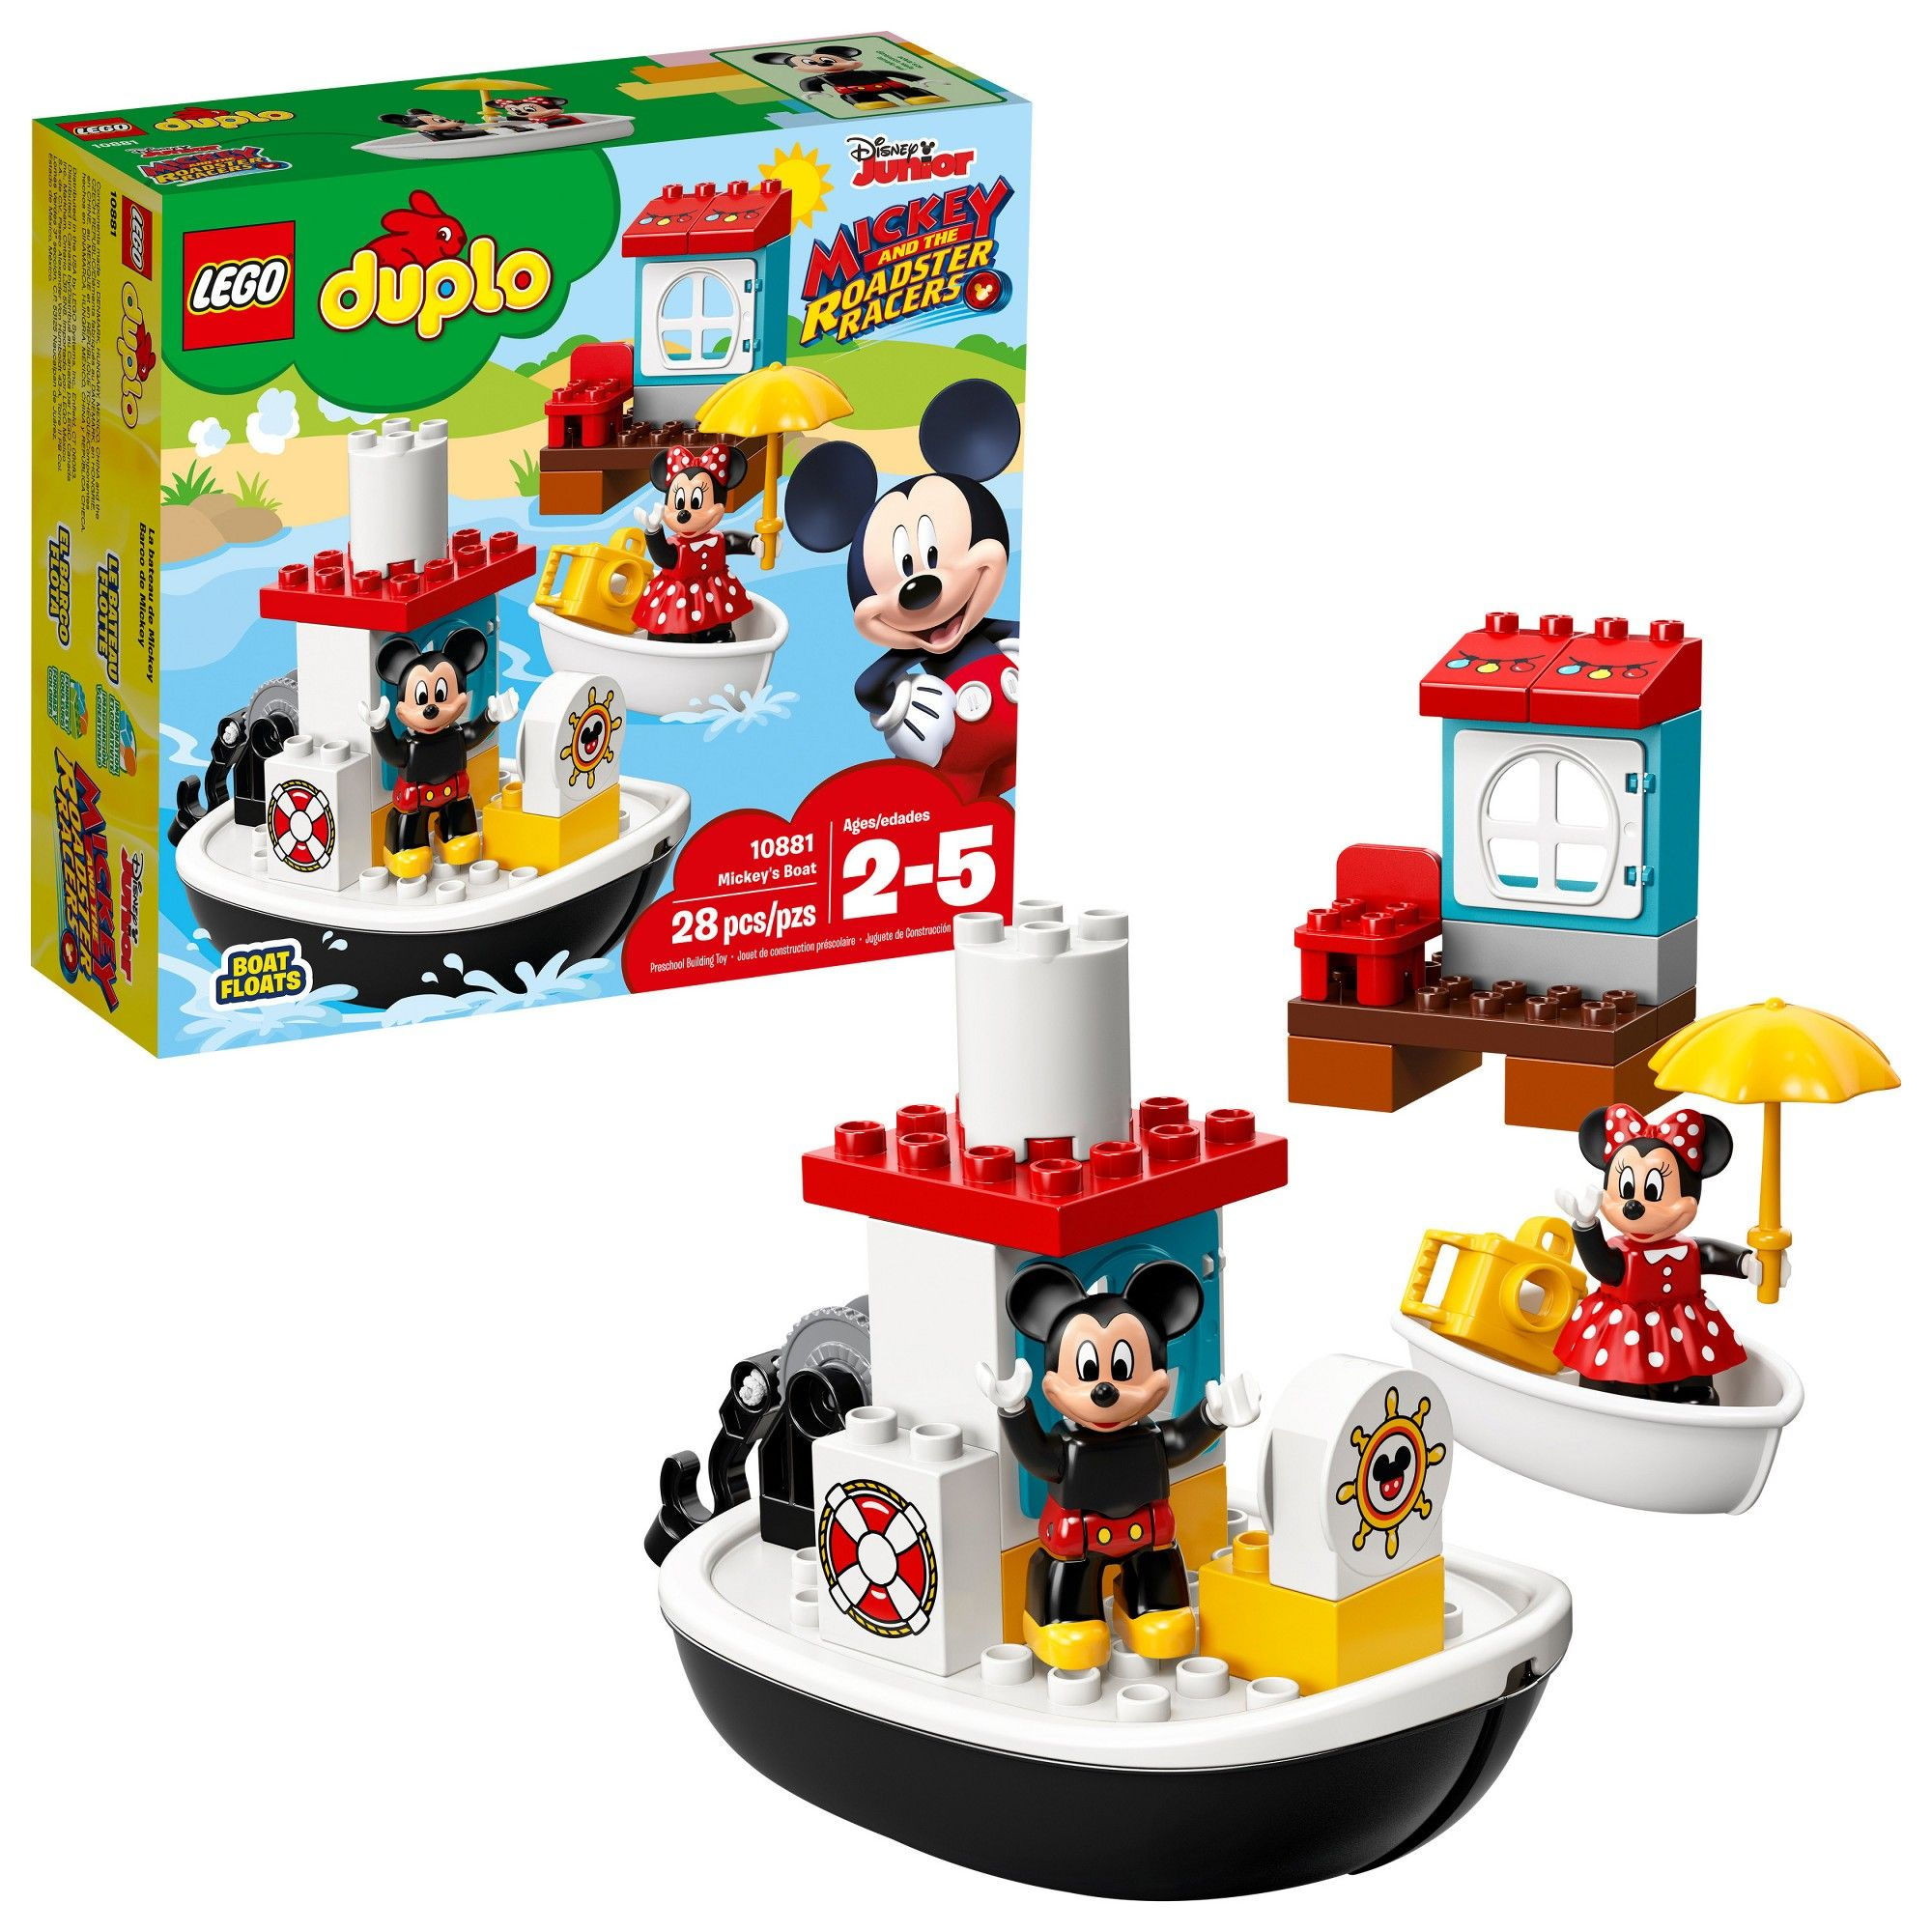 Lego Duplo Disney Mickey Mouses Boat 10881 Products Lego Duplo